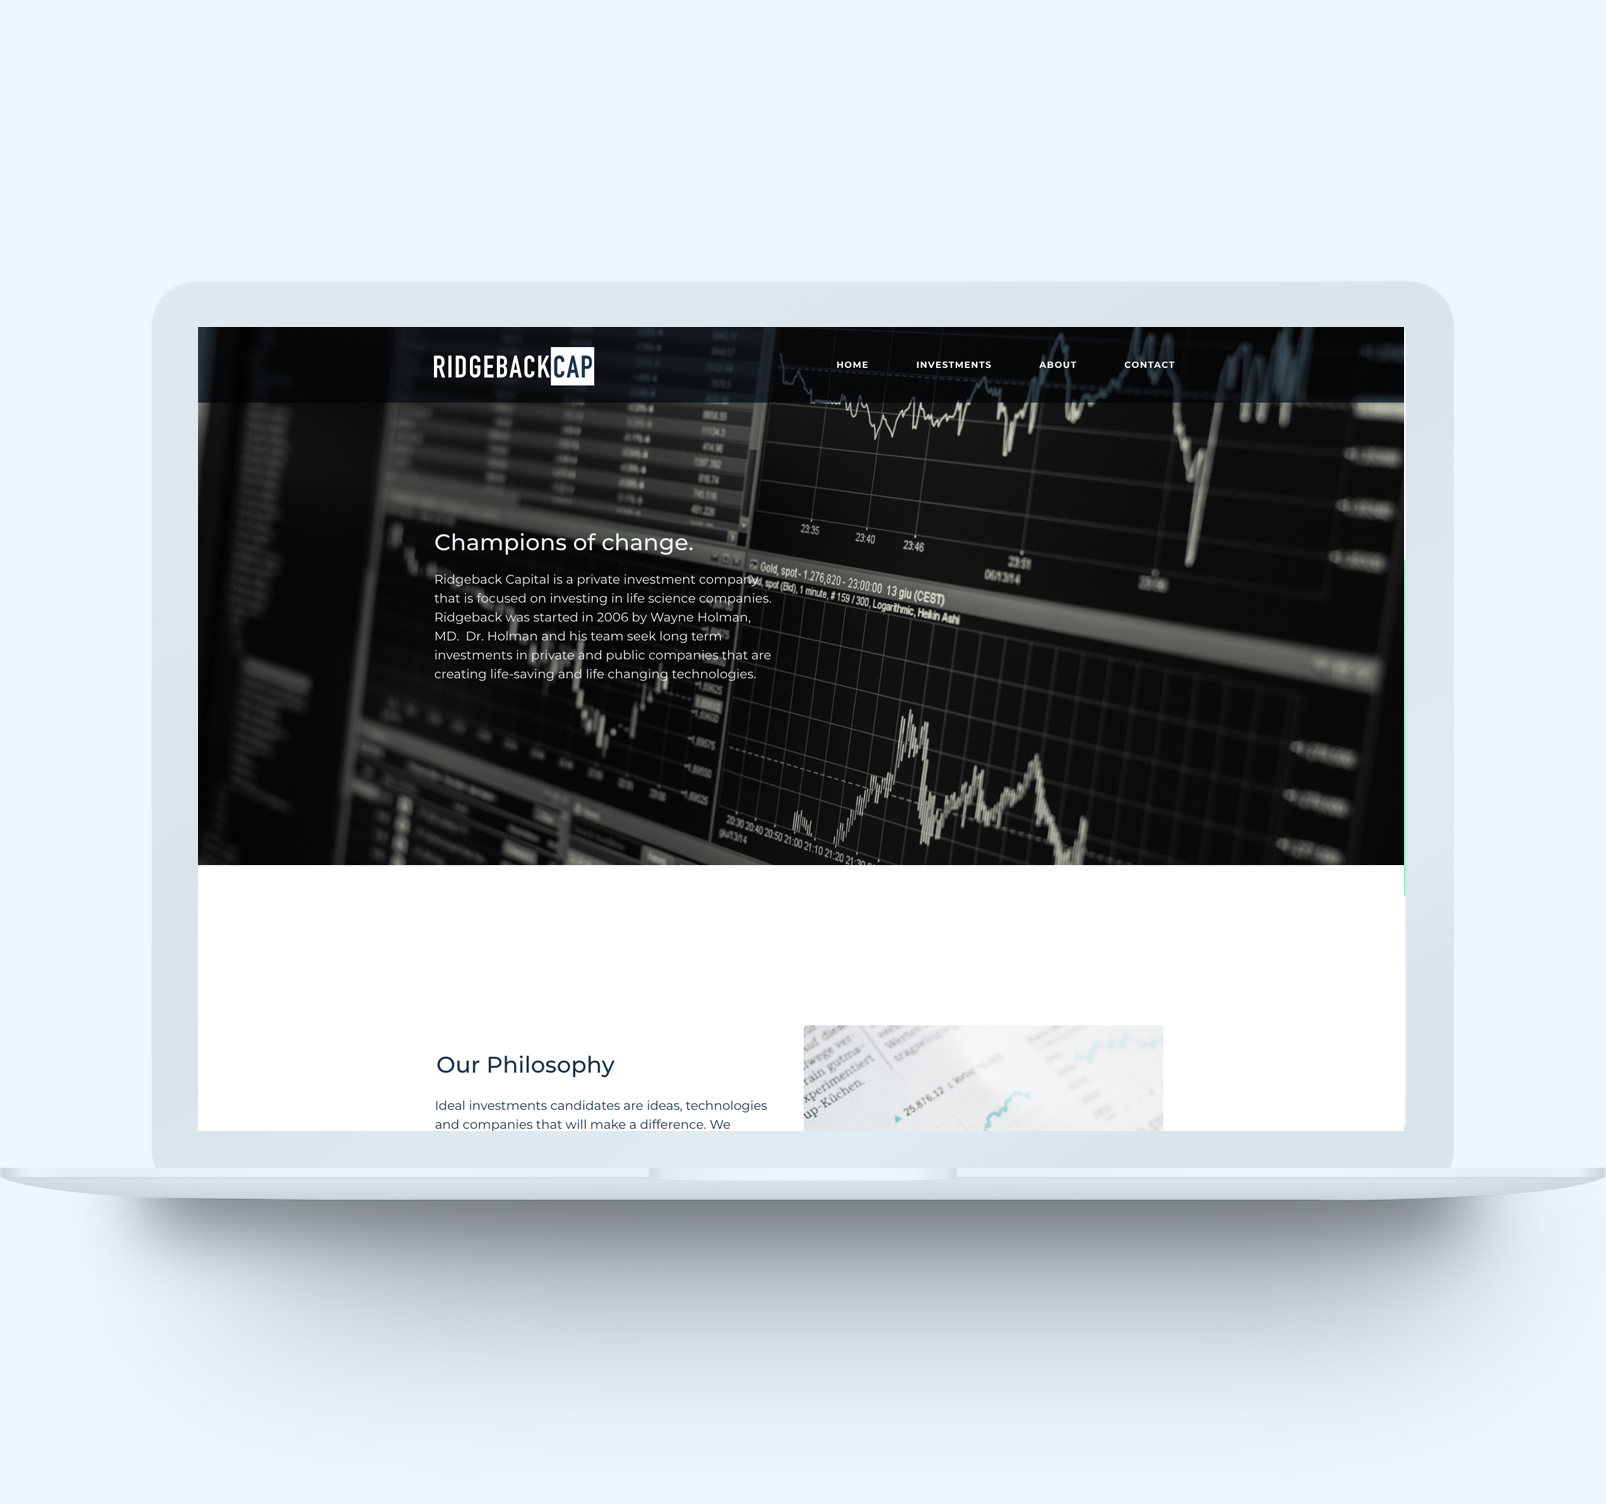 Website Design Work for Ridgeback Capital